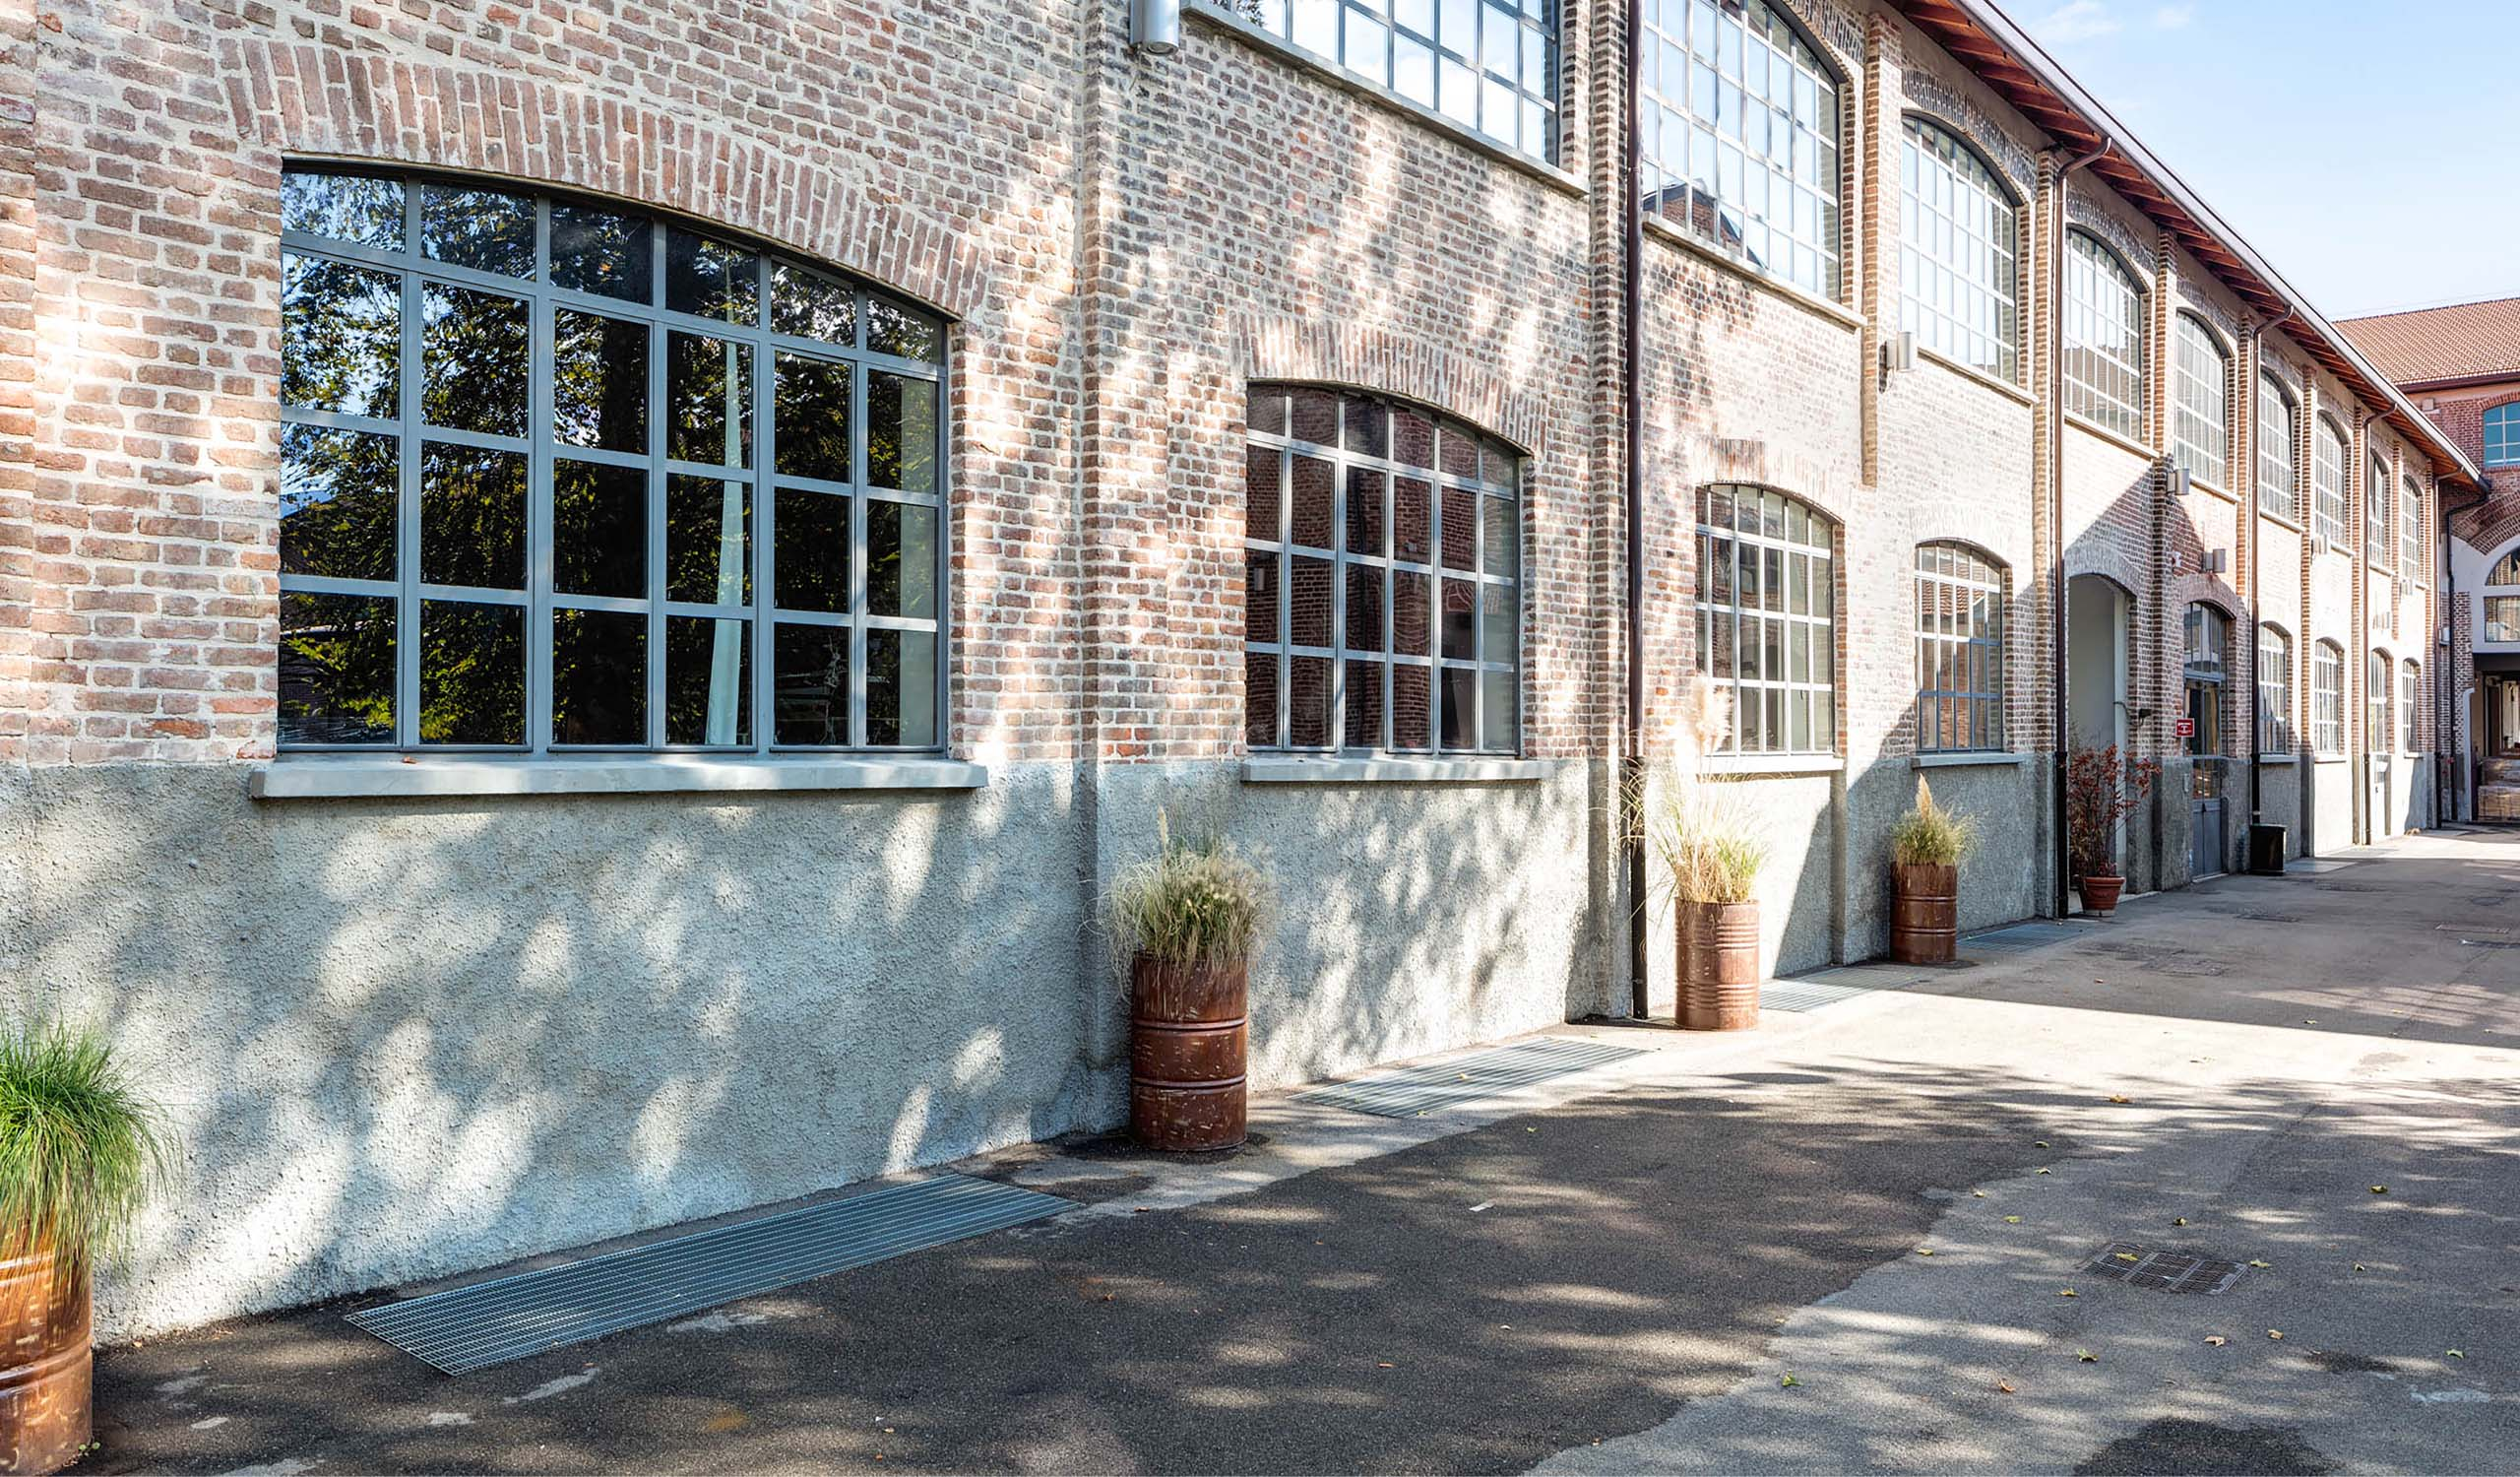 Monumentale Warehouse-art events